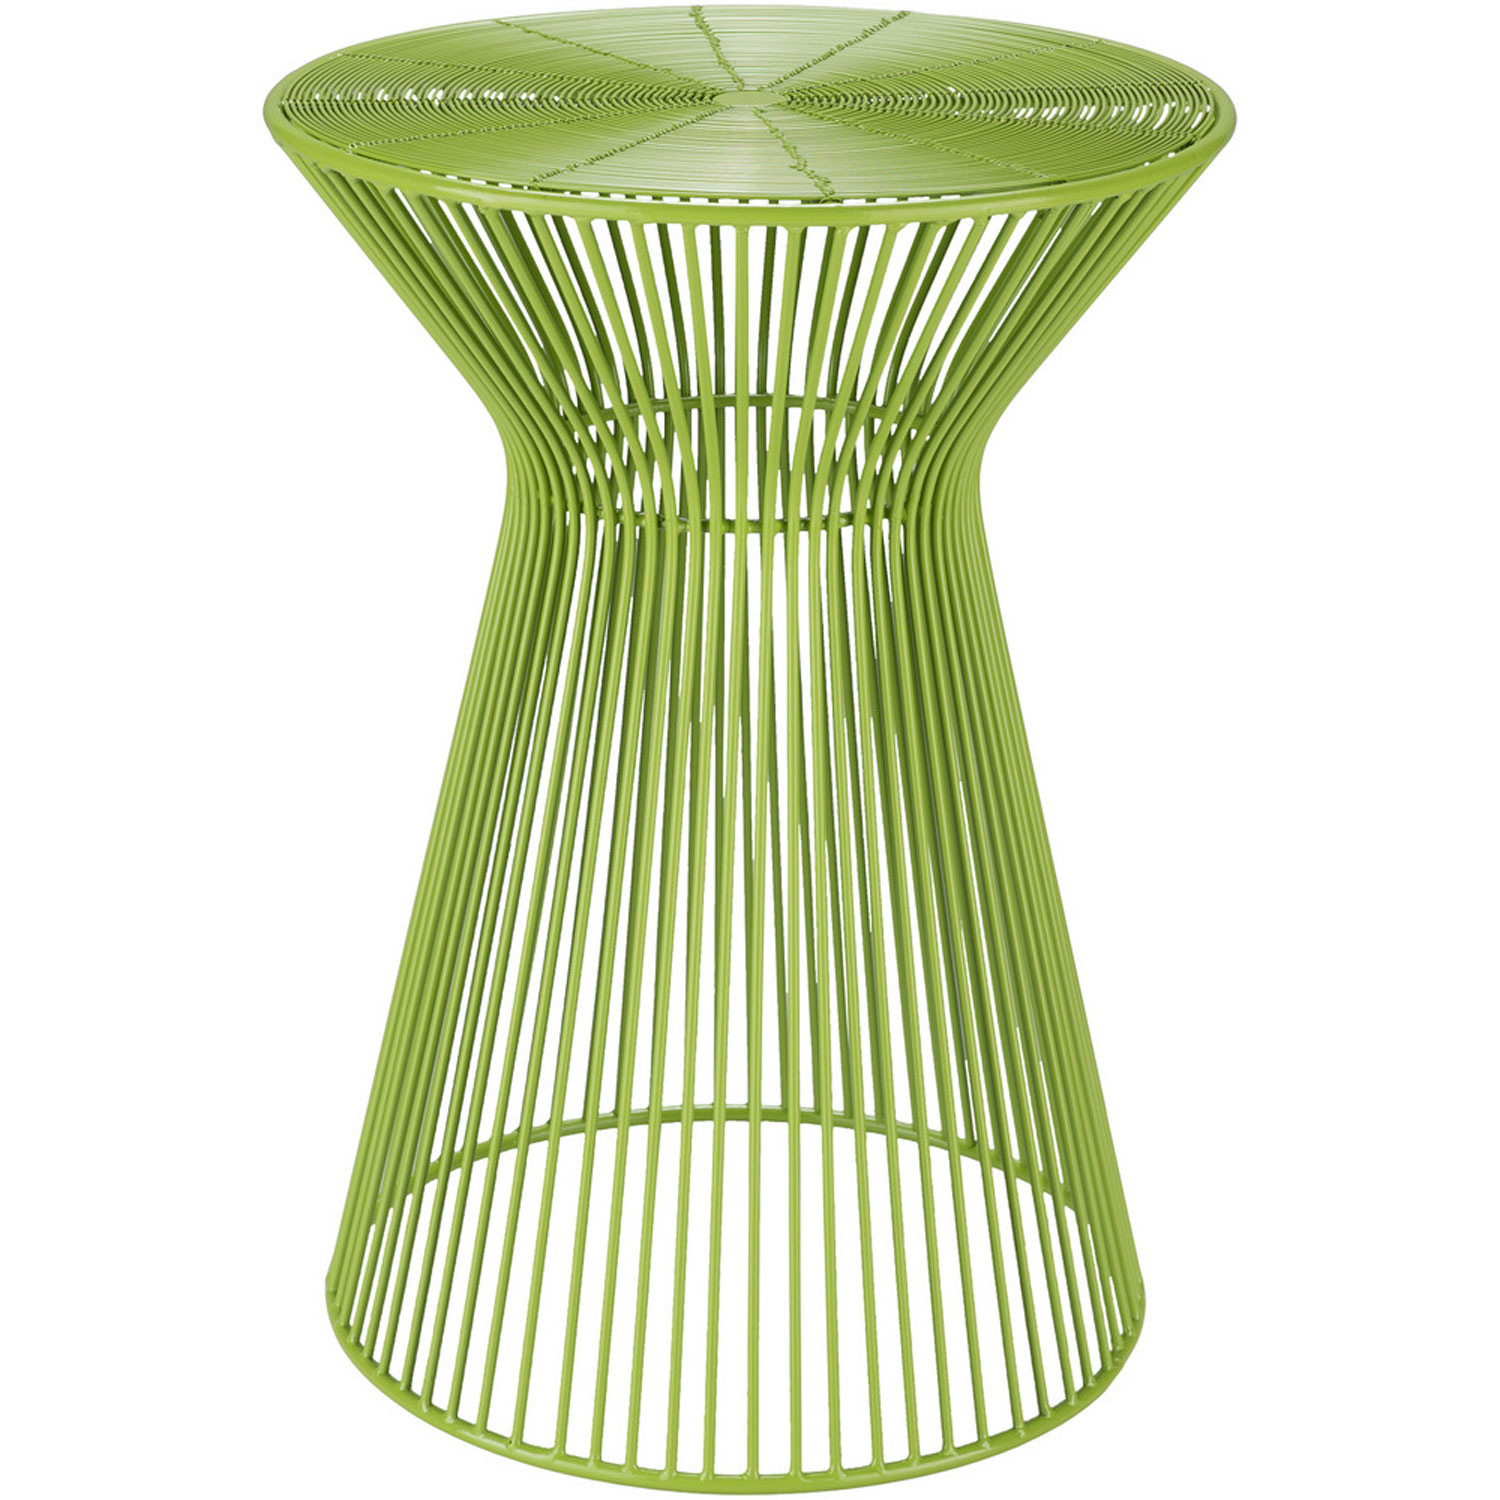 surya fife lime accent table bellacor green hover zoom mirrored console best desk lamp pine dining chairs glass nesting end tables small touch leadlight lamps whalen furniture